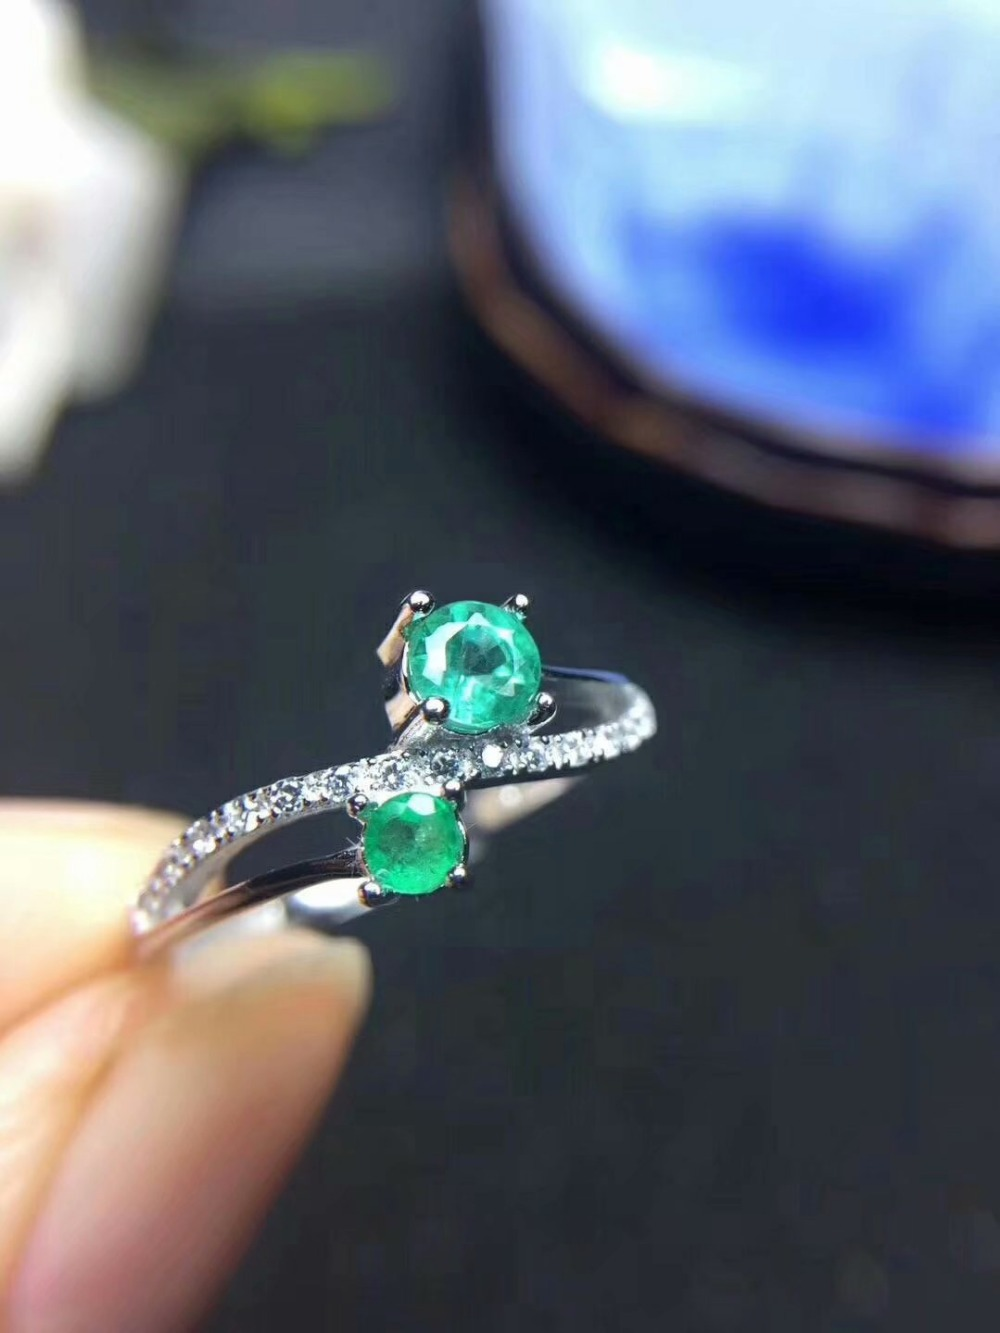 100% 925 sterling silver Natural green Emerald Rings fine Jewelry gift women wedding open wholesale new 3*4mm tfj030404agml 100% 925 sterling silver Natural green Emerald Rings fine Jewelry gift women wedding open wholesale new 3*4mm tfj030404agml